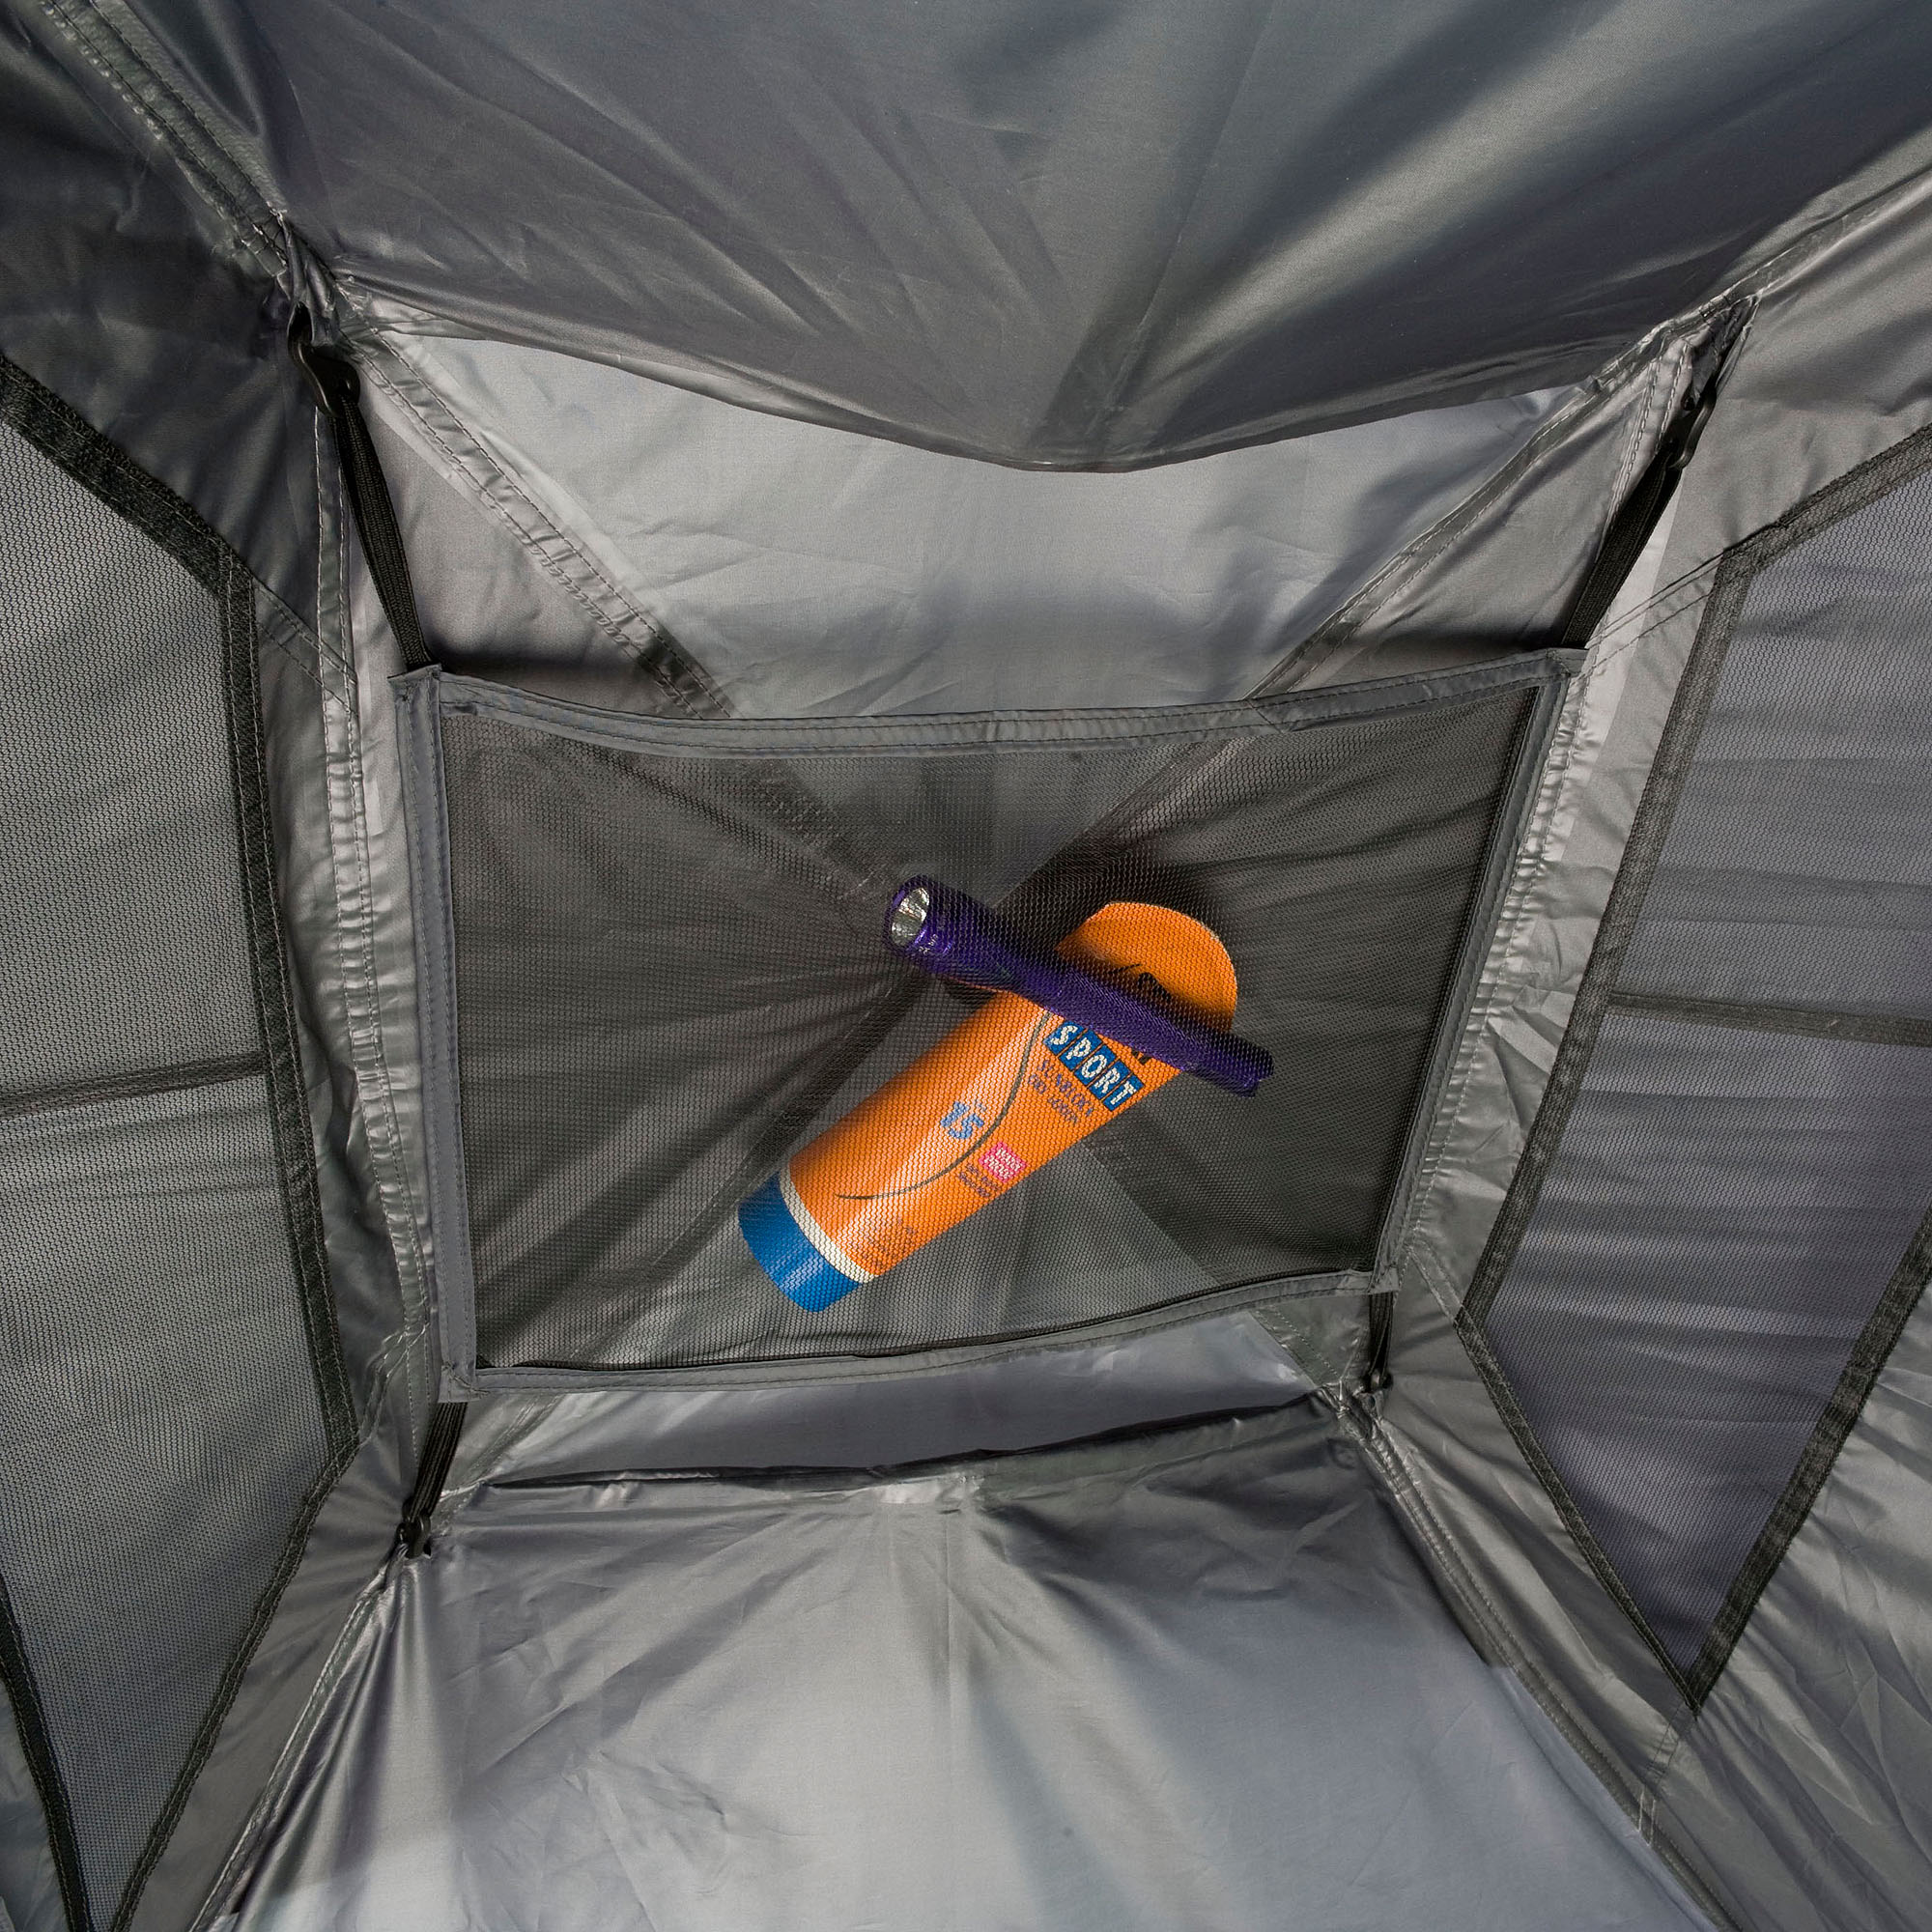 Ozark Trail 4 Person Instant Dome Tent Image 3 of 7 & Ozark Trail 4 Person Instant Dome Tent - Walmart.com